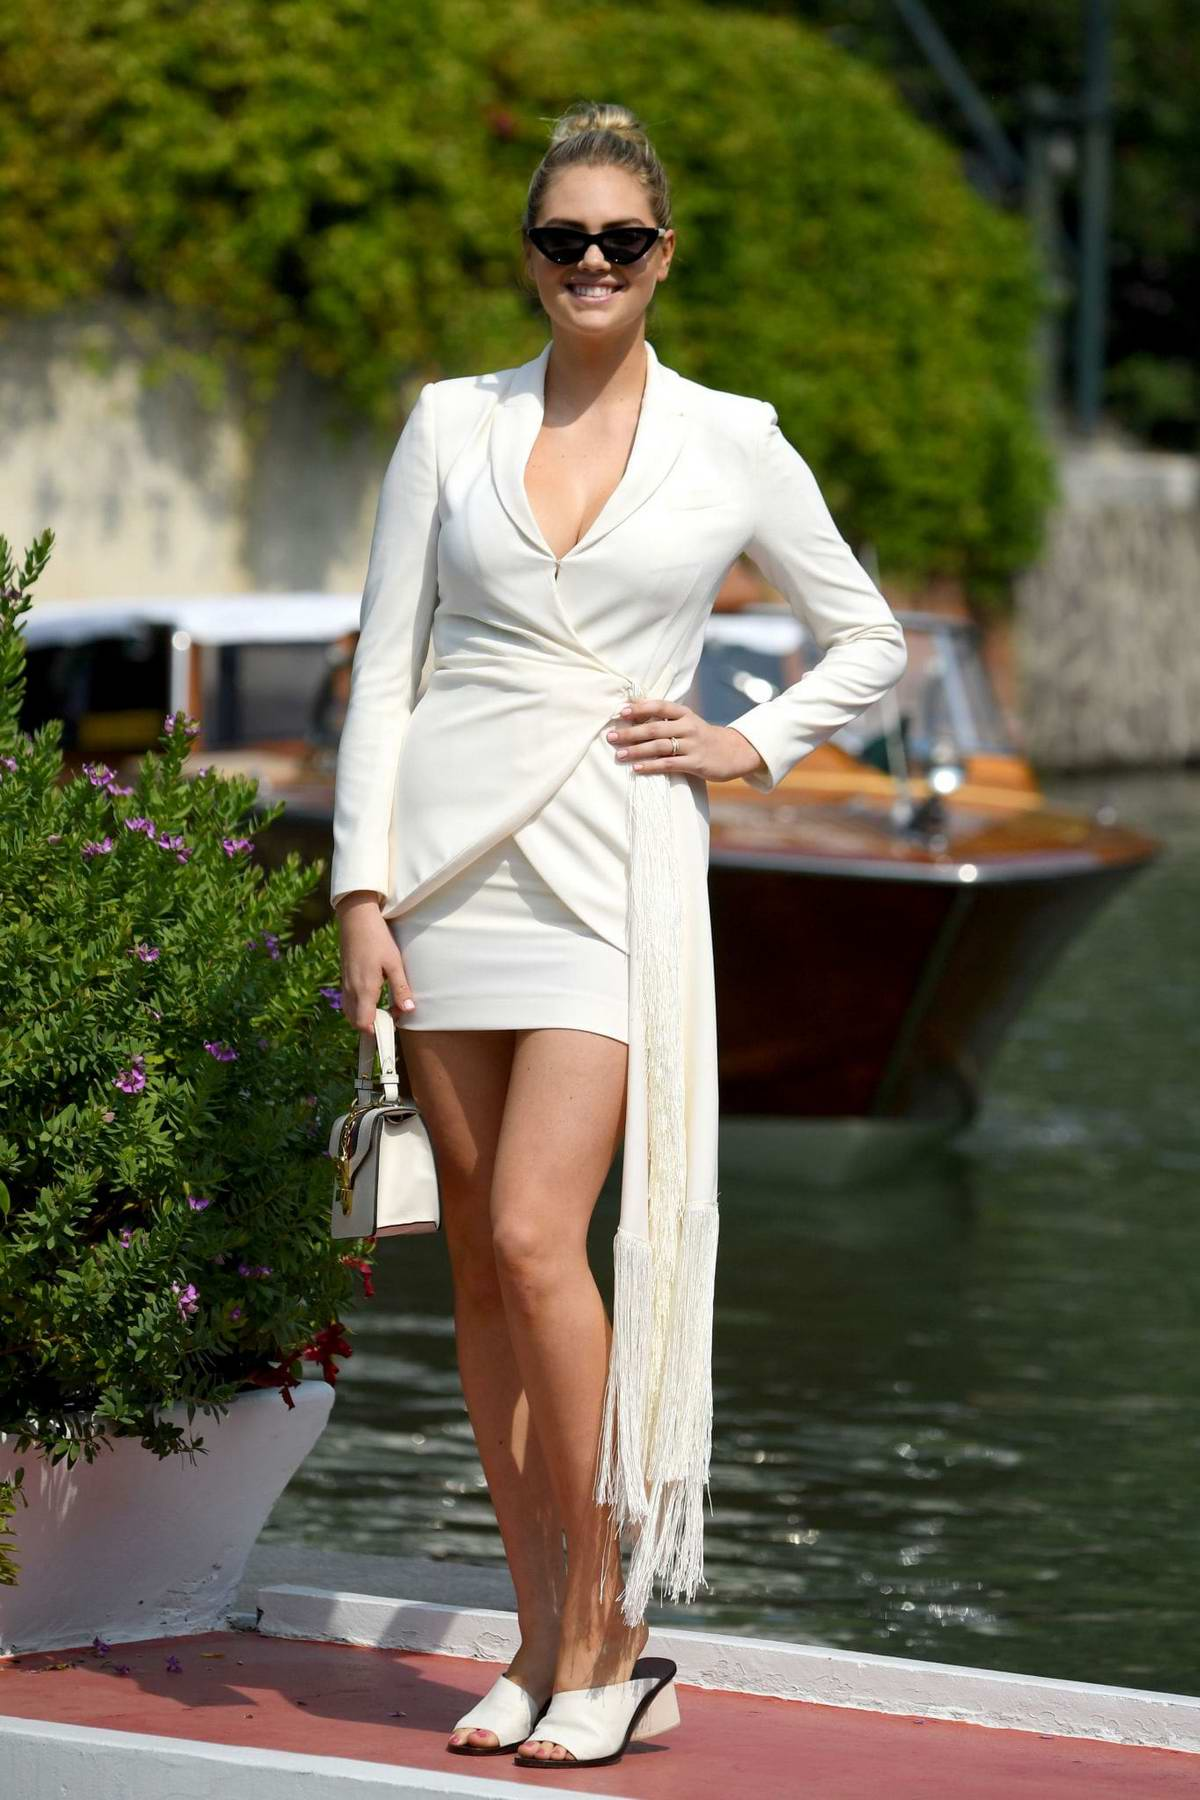 Kate Upton dazzles in white as she arrives at Excelsior Hotel during the 76th Venice Film Festival in Venice, Italy